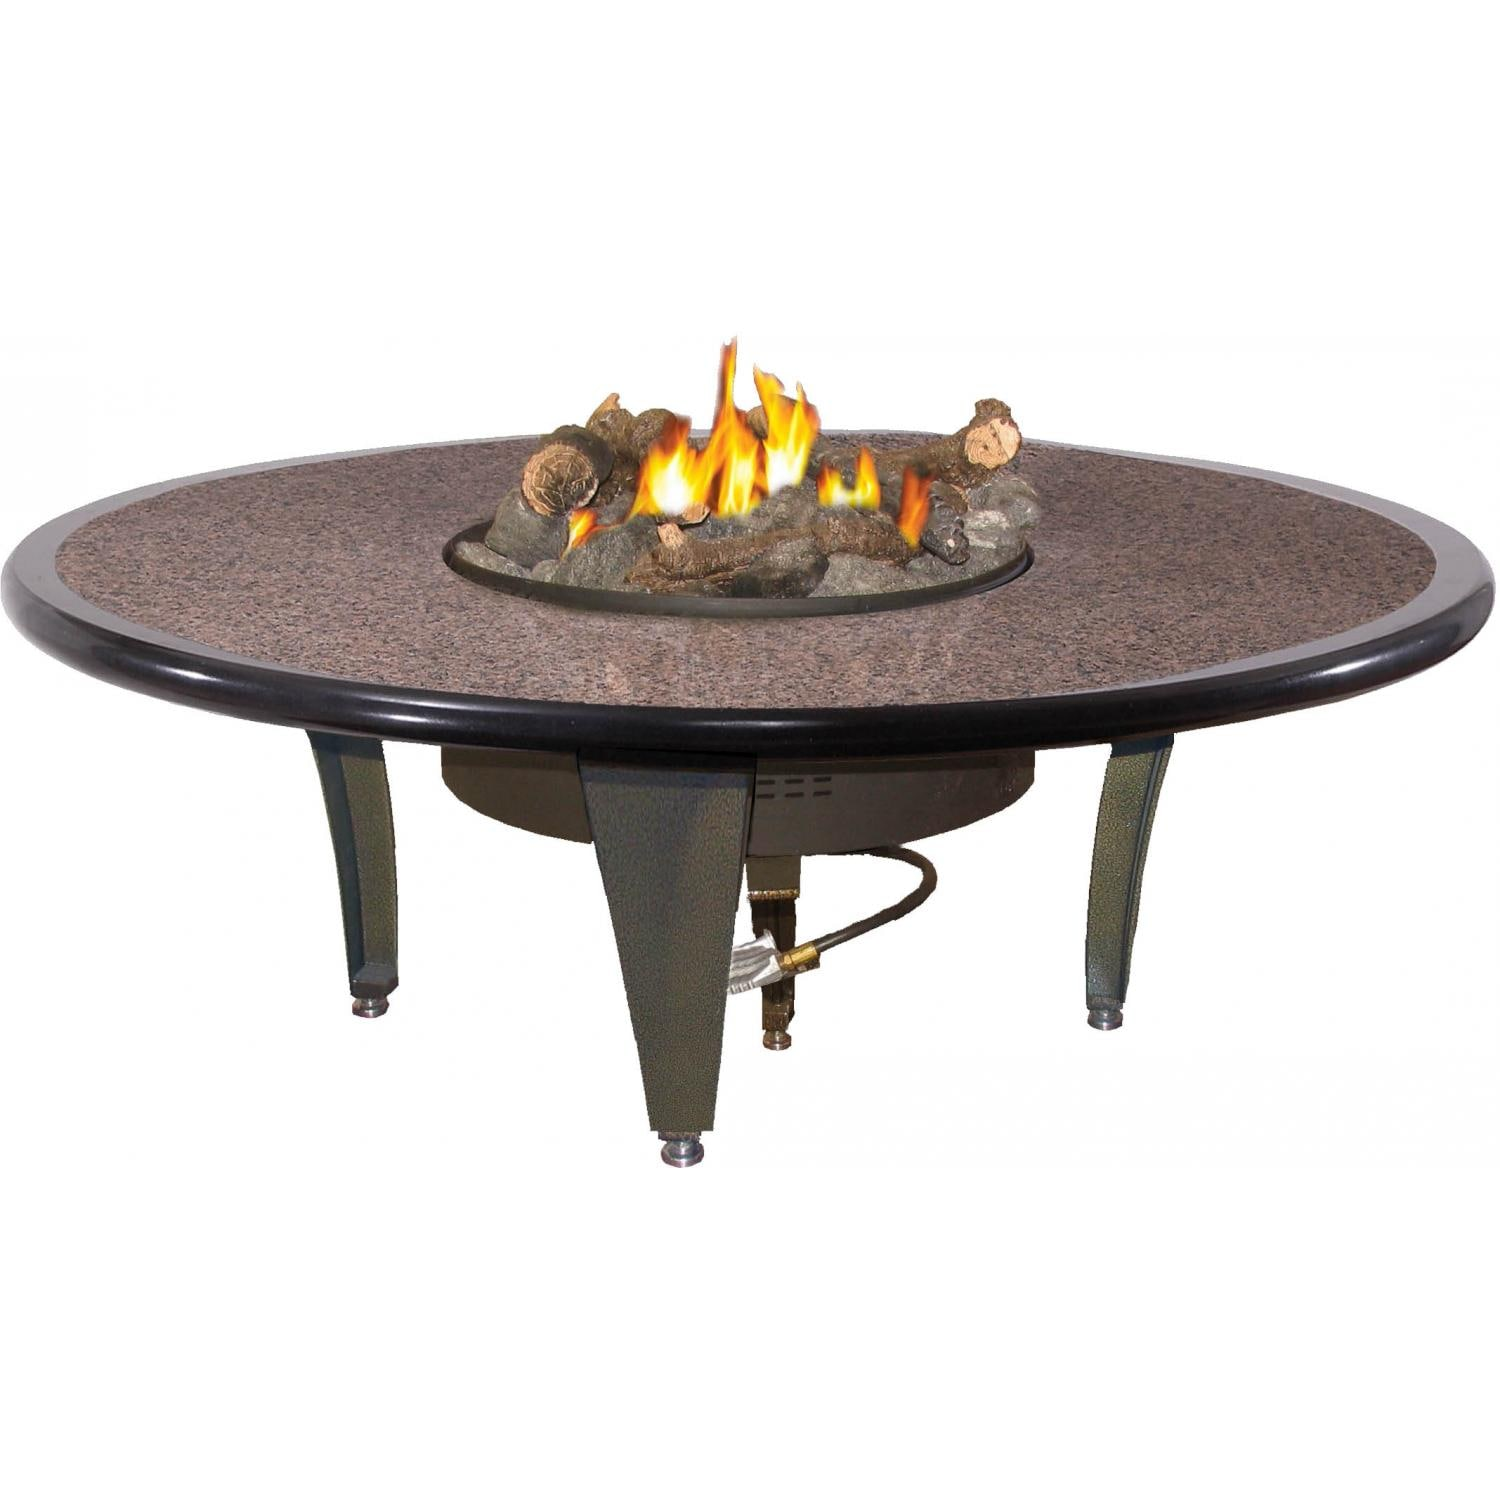 Peterson Outdoor Campfyre 54 Inch Propane Gas Manual Safety Pilot Granite Fire Pit Table With